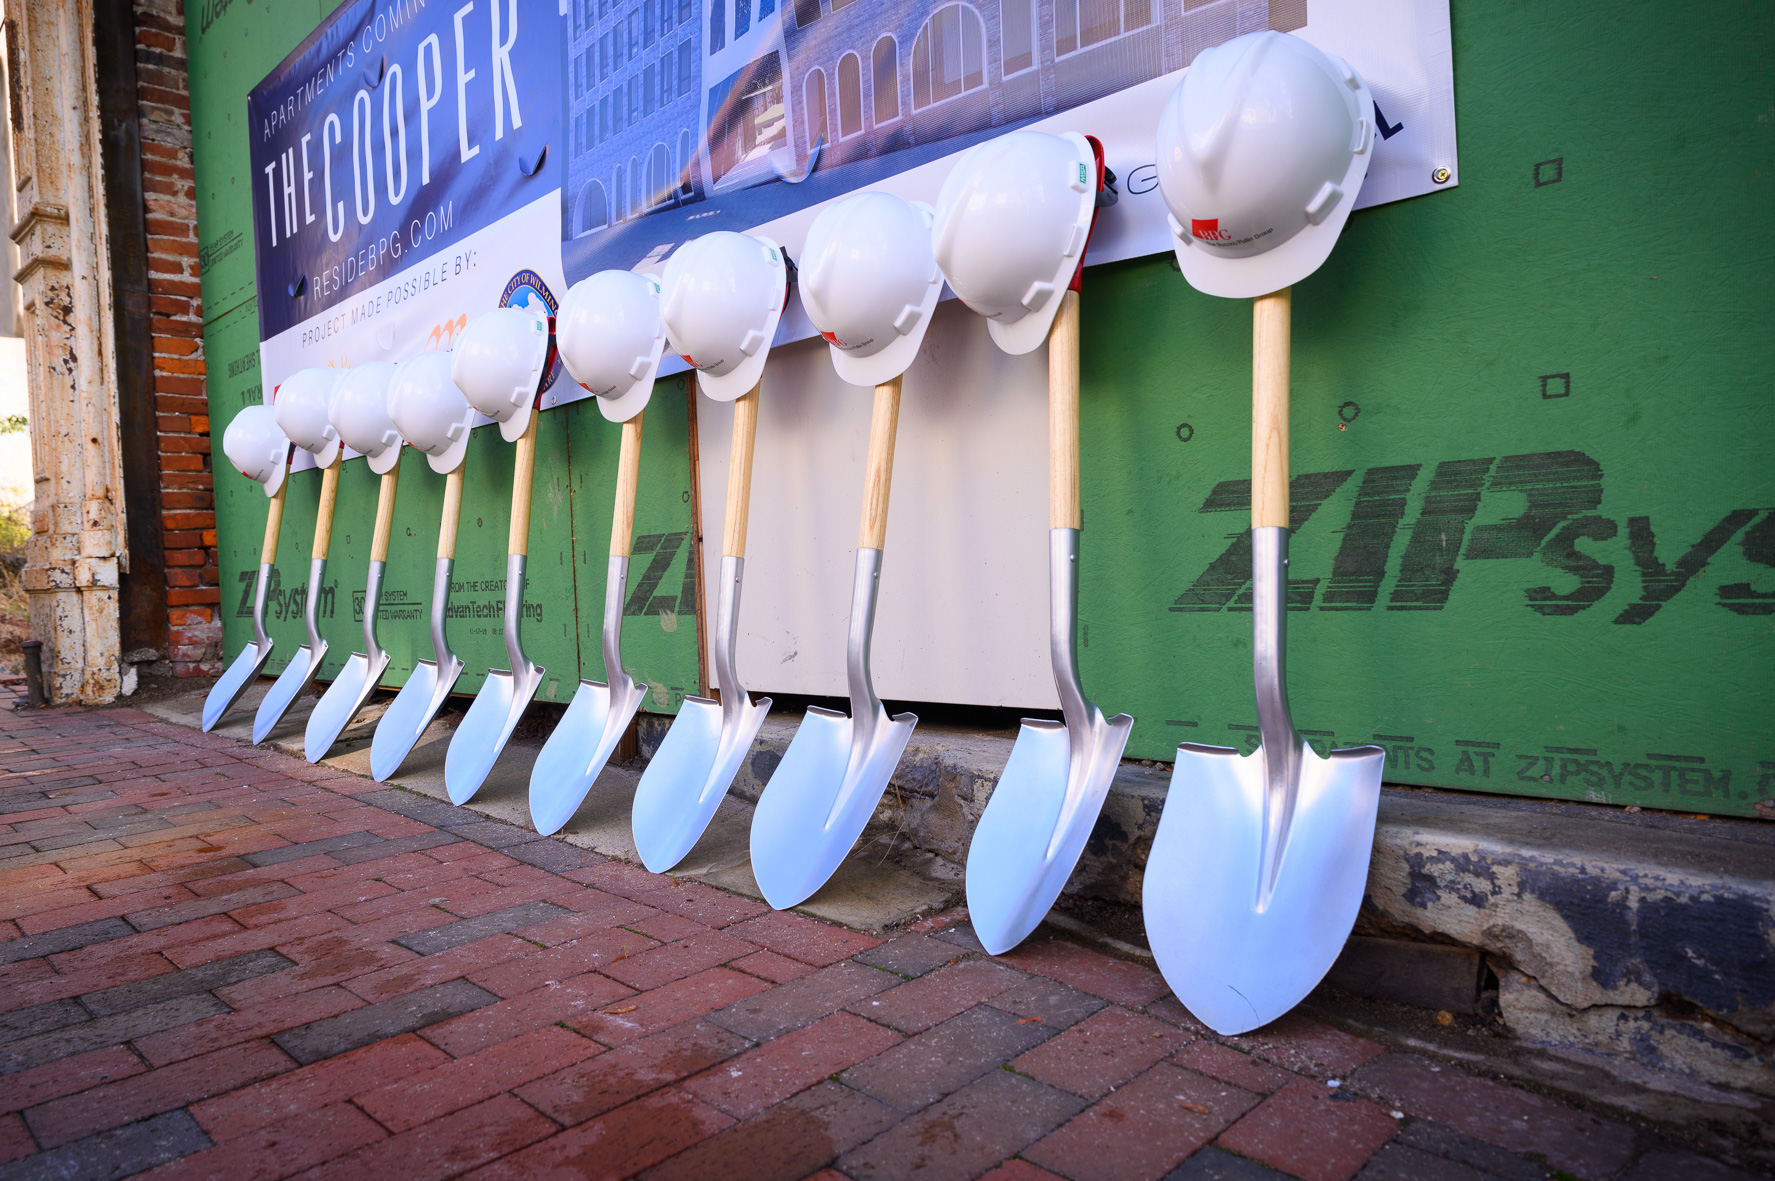 Hardhats leaning on shovels at The Cooper development site